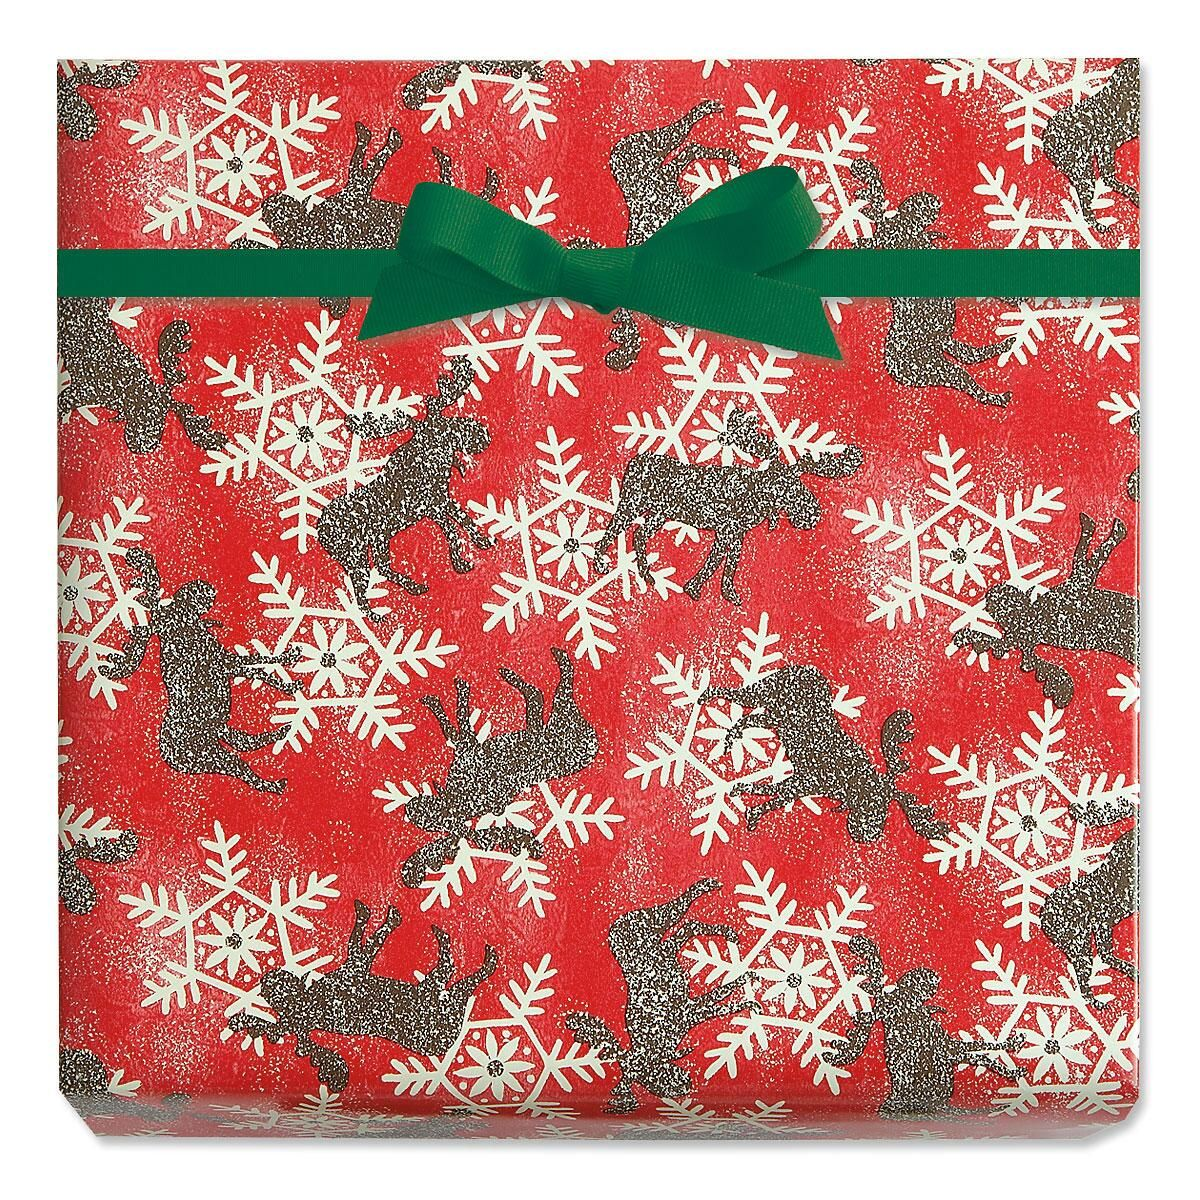 Moose and Snowflakes Jumbo Rolled Gift Wrap